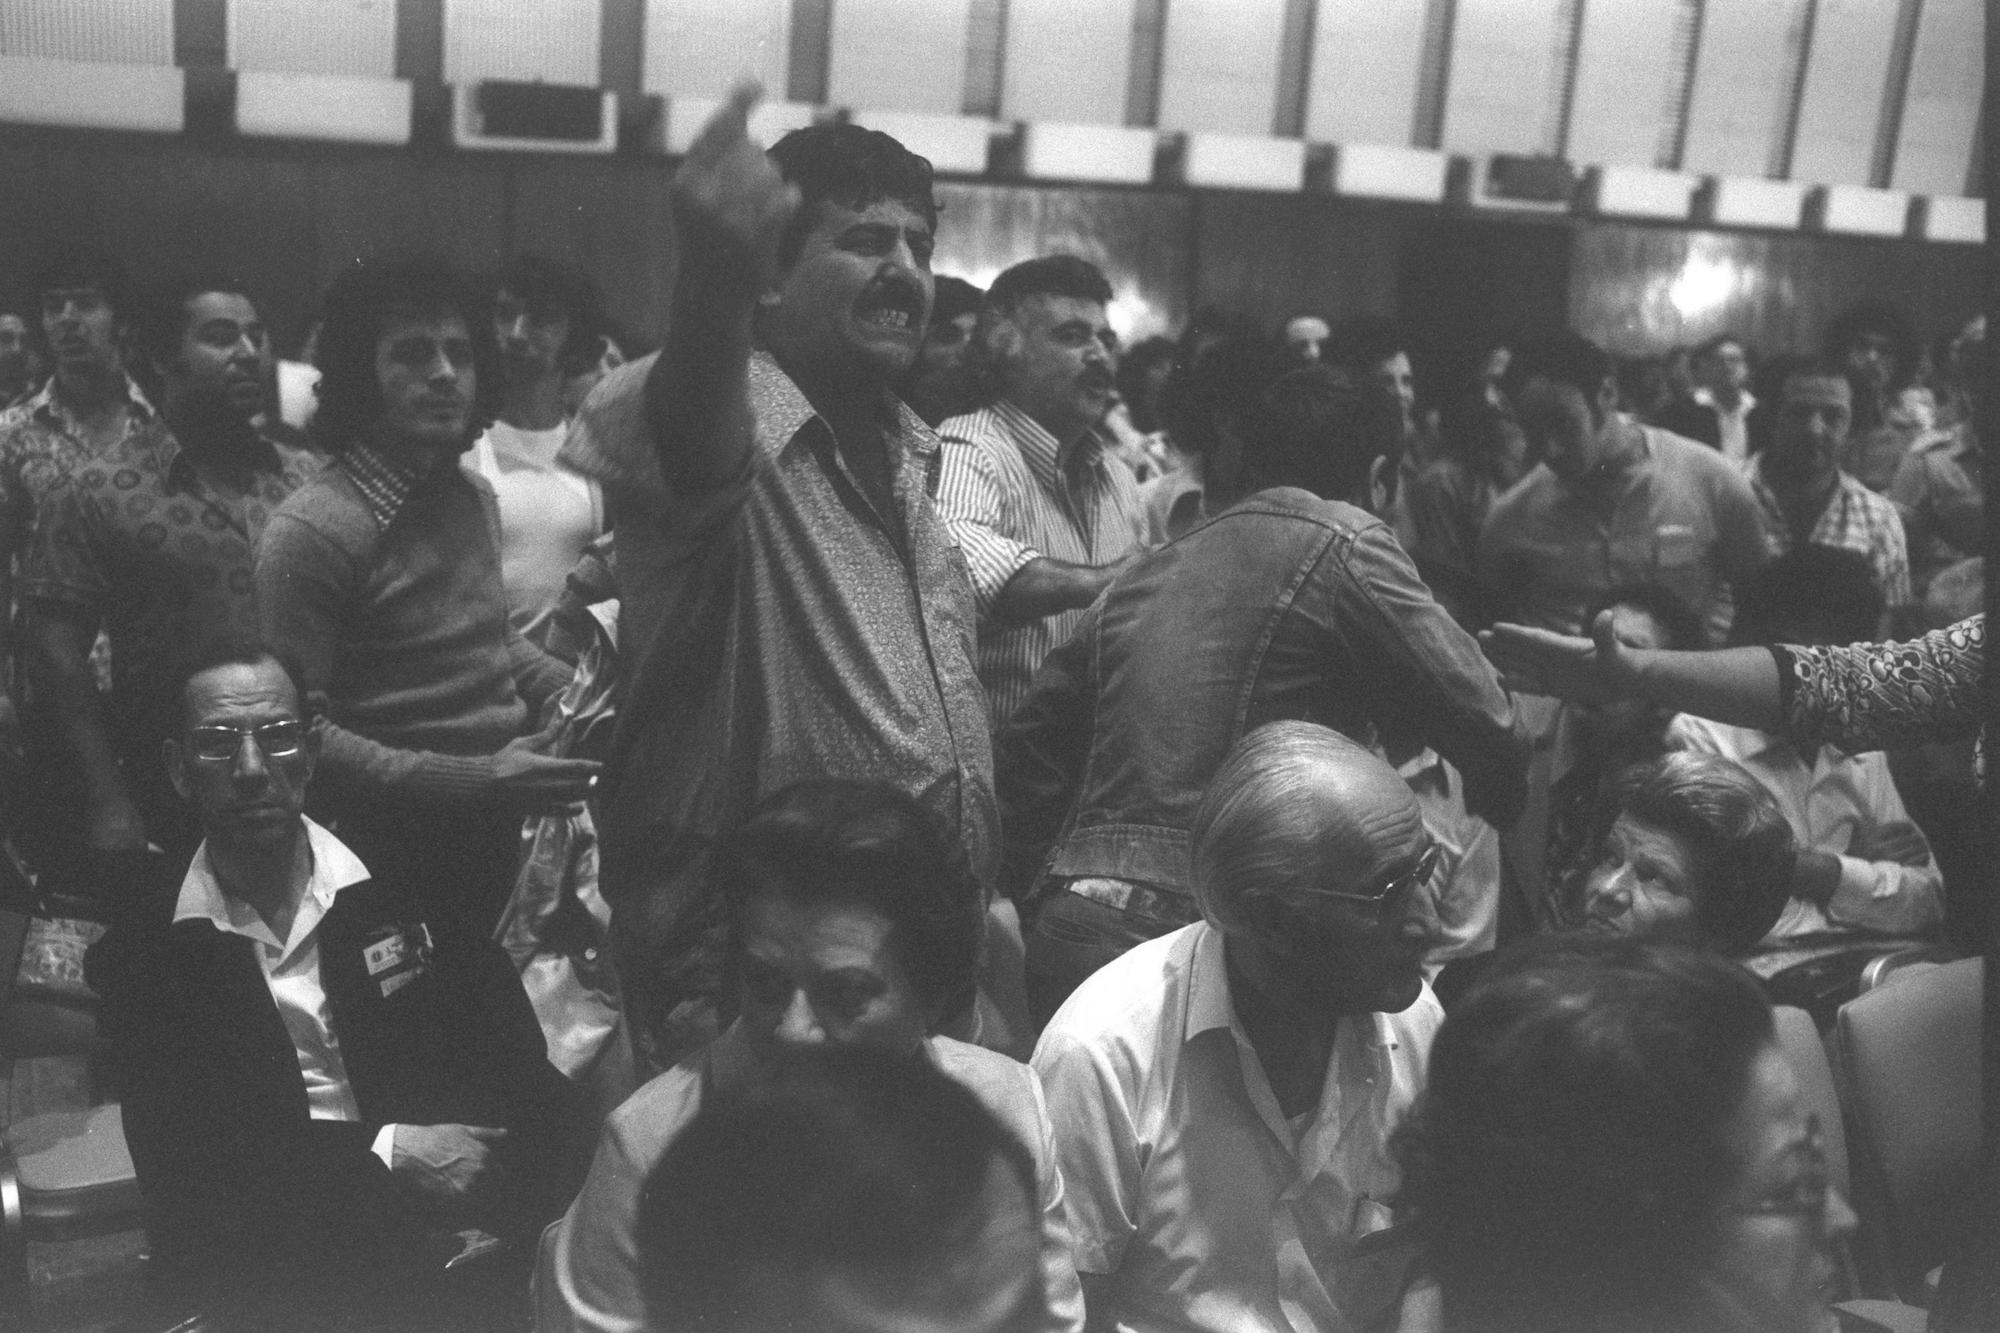 Members of the Israeli Black Panthers disrupt the opening session of the World Congress of North African Immigrants in Tel Aviv, October 25, 1975. (Ya'acov Sa'ar)